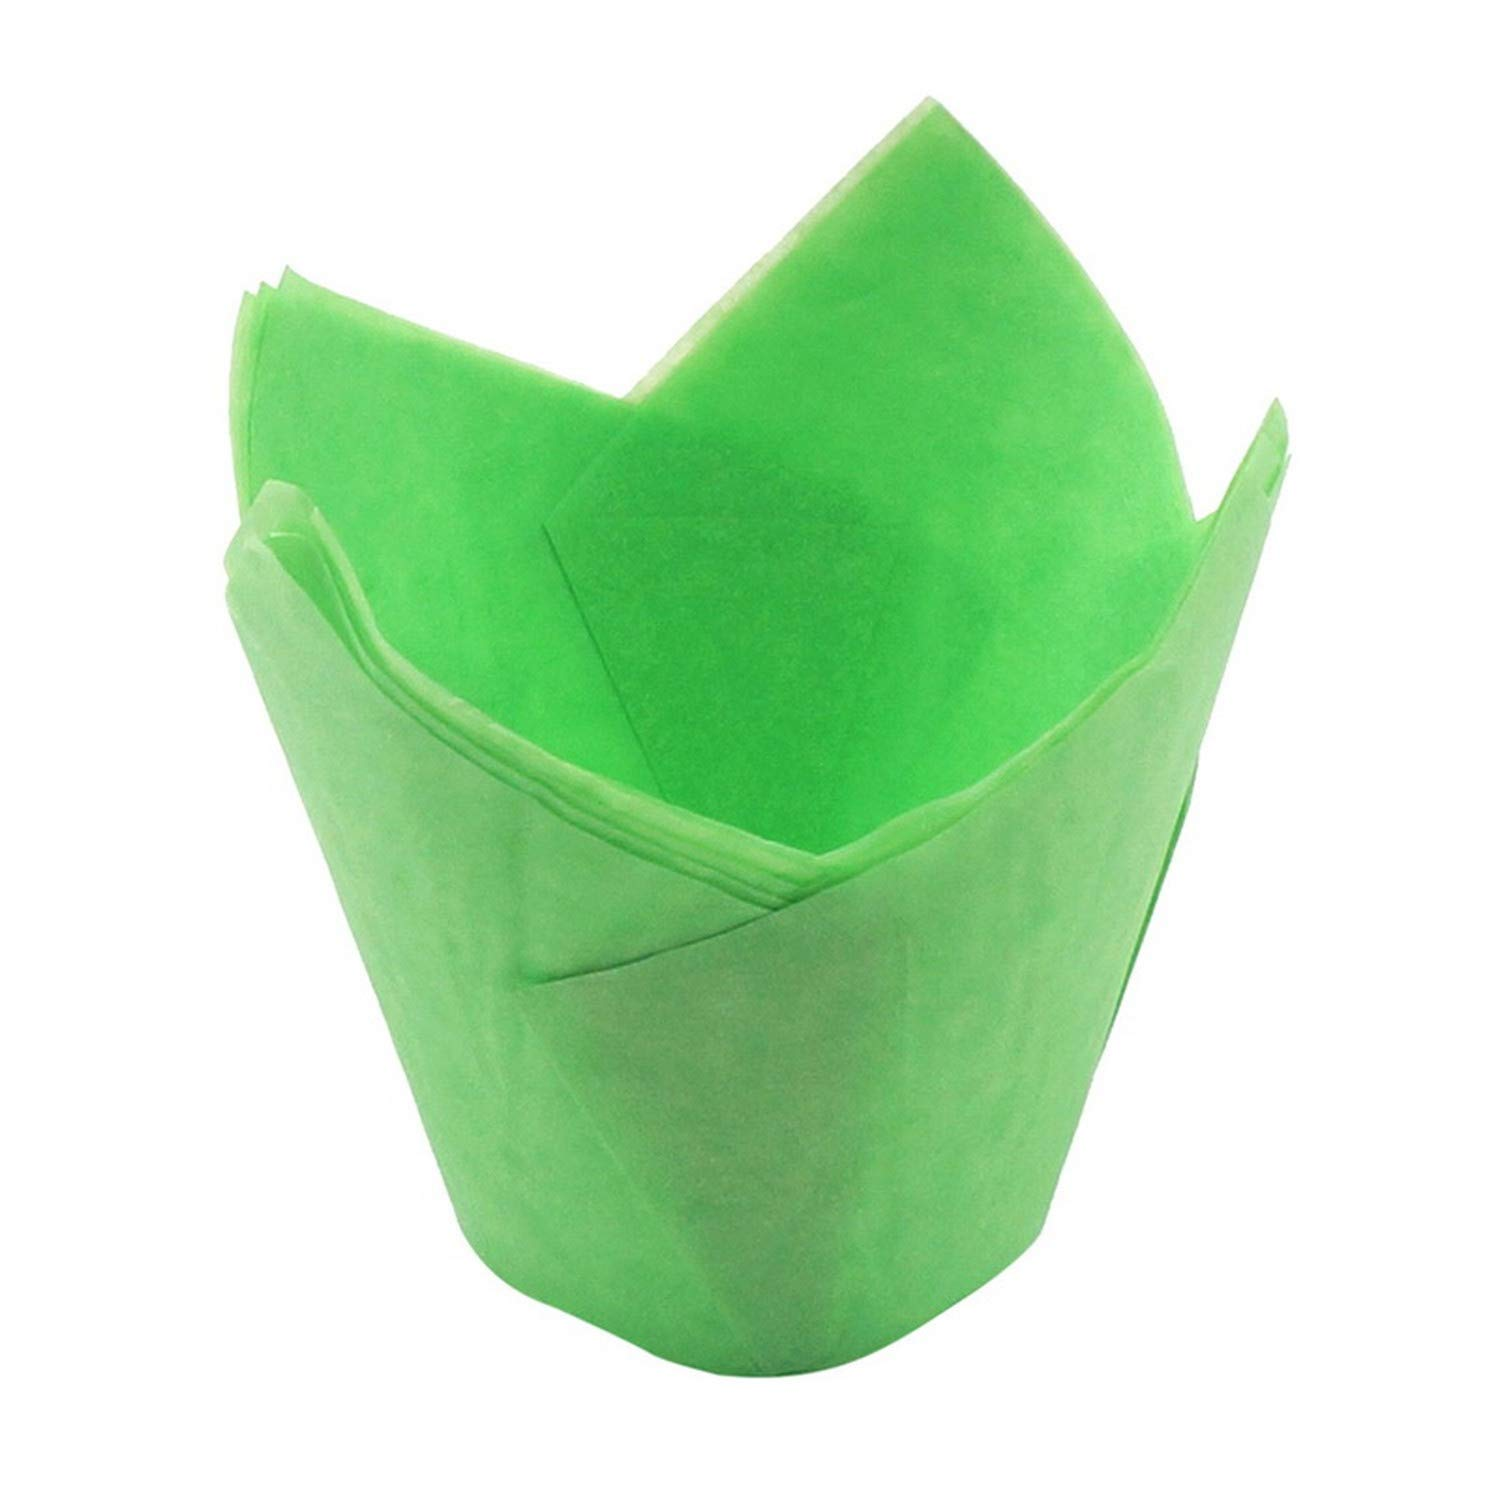 Hoomall 50Pcs Cake Liners Muffin Cup Cute Baking Wrapper Not Sticky Christmas Tool New Cupcake Paper Greaseproof Wedding Party,Green by Yinshizhu21